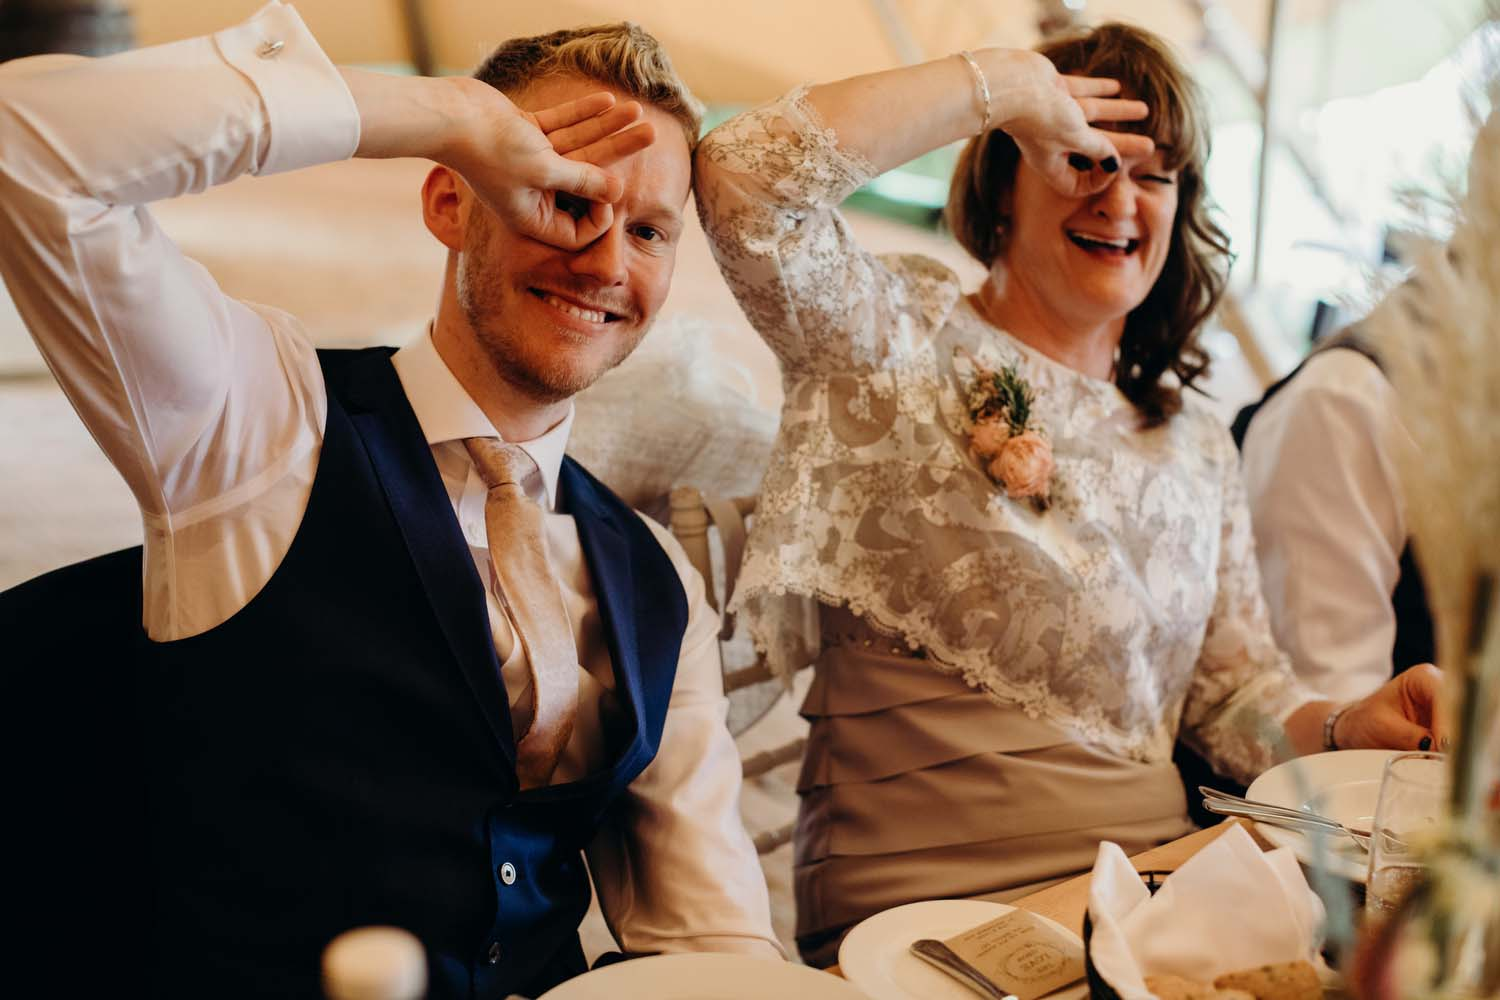 Guests having fun at tipi wedding